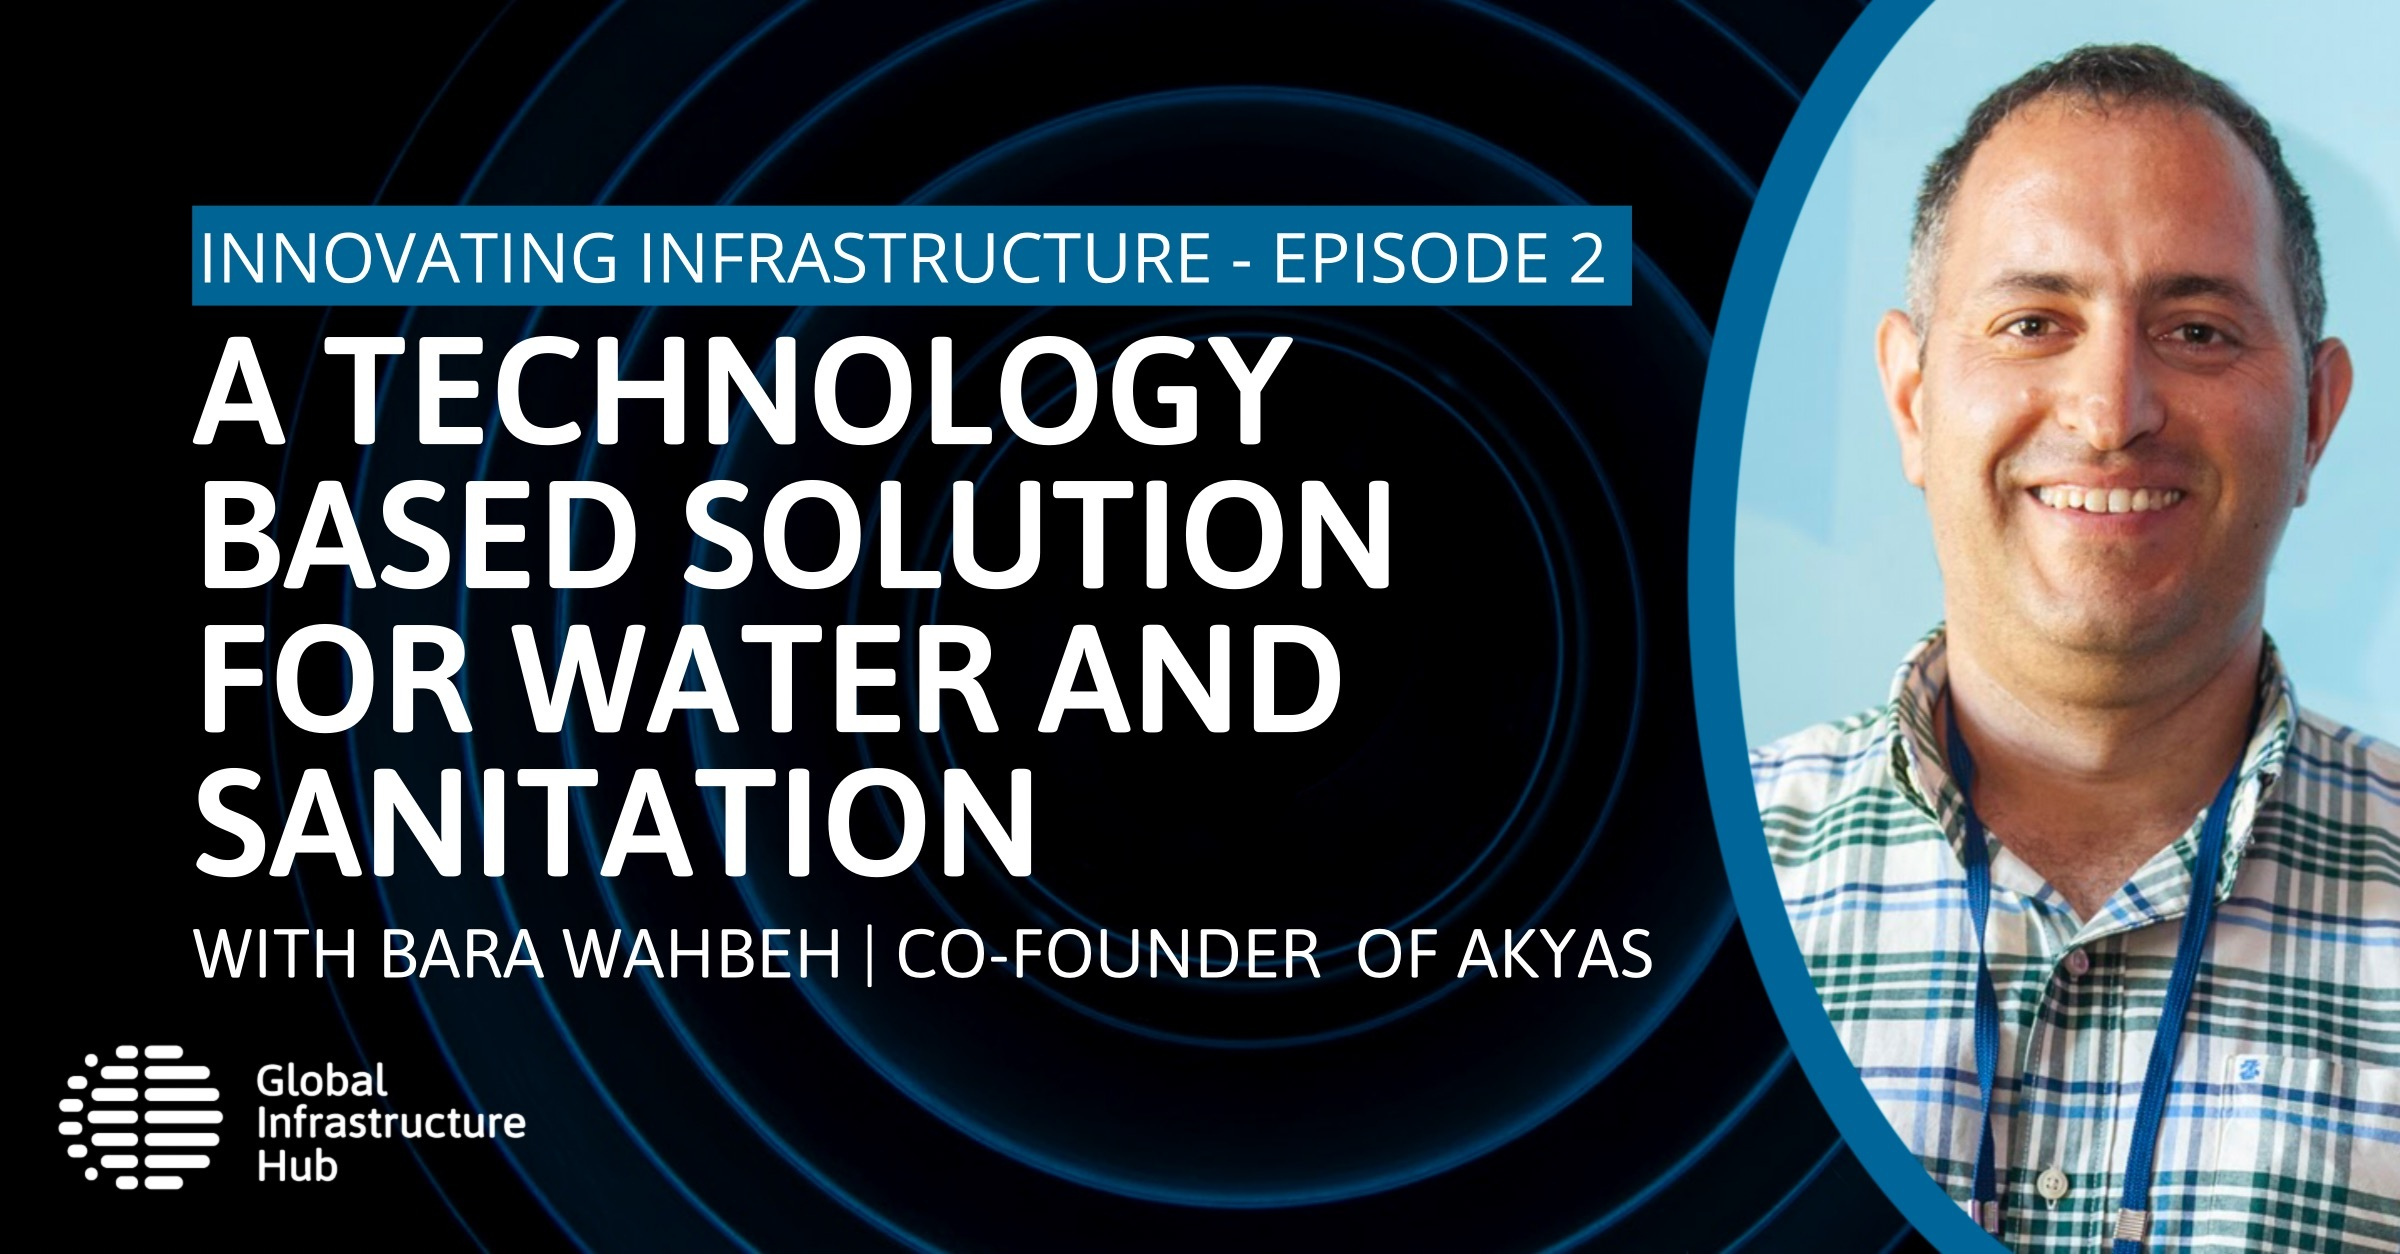 technology based solution for water and sanitation